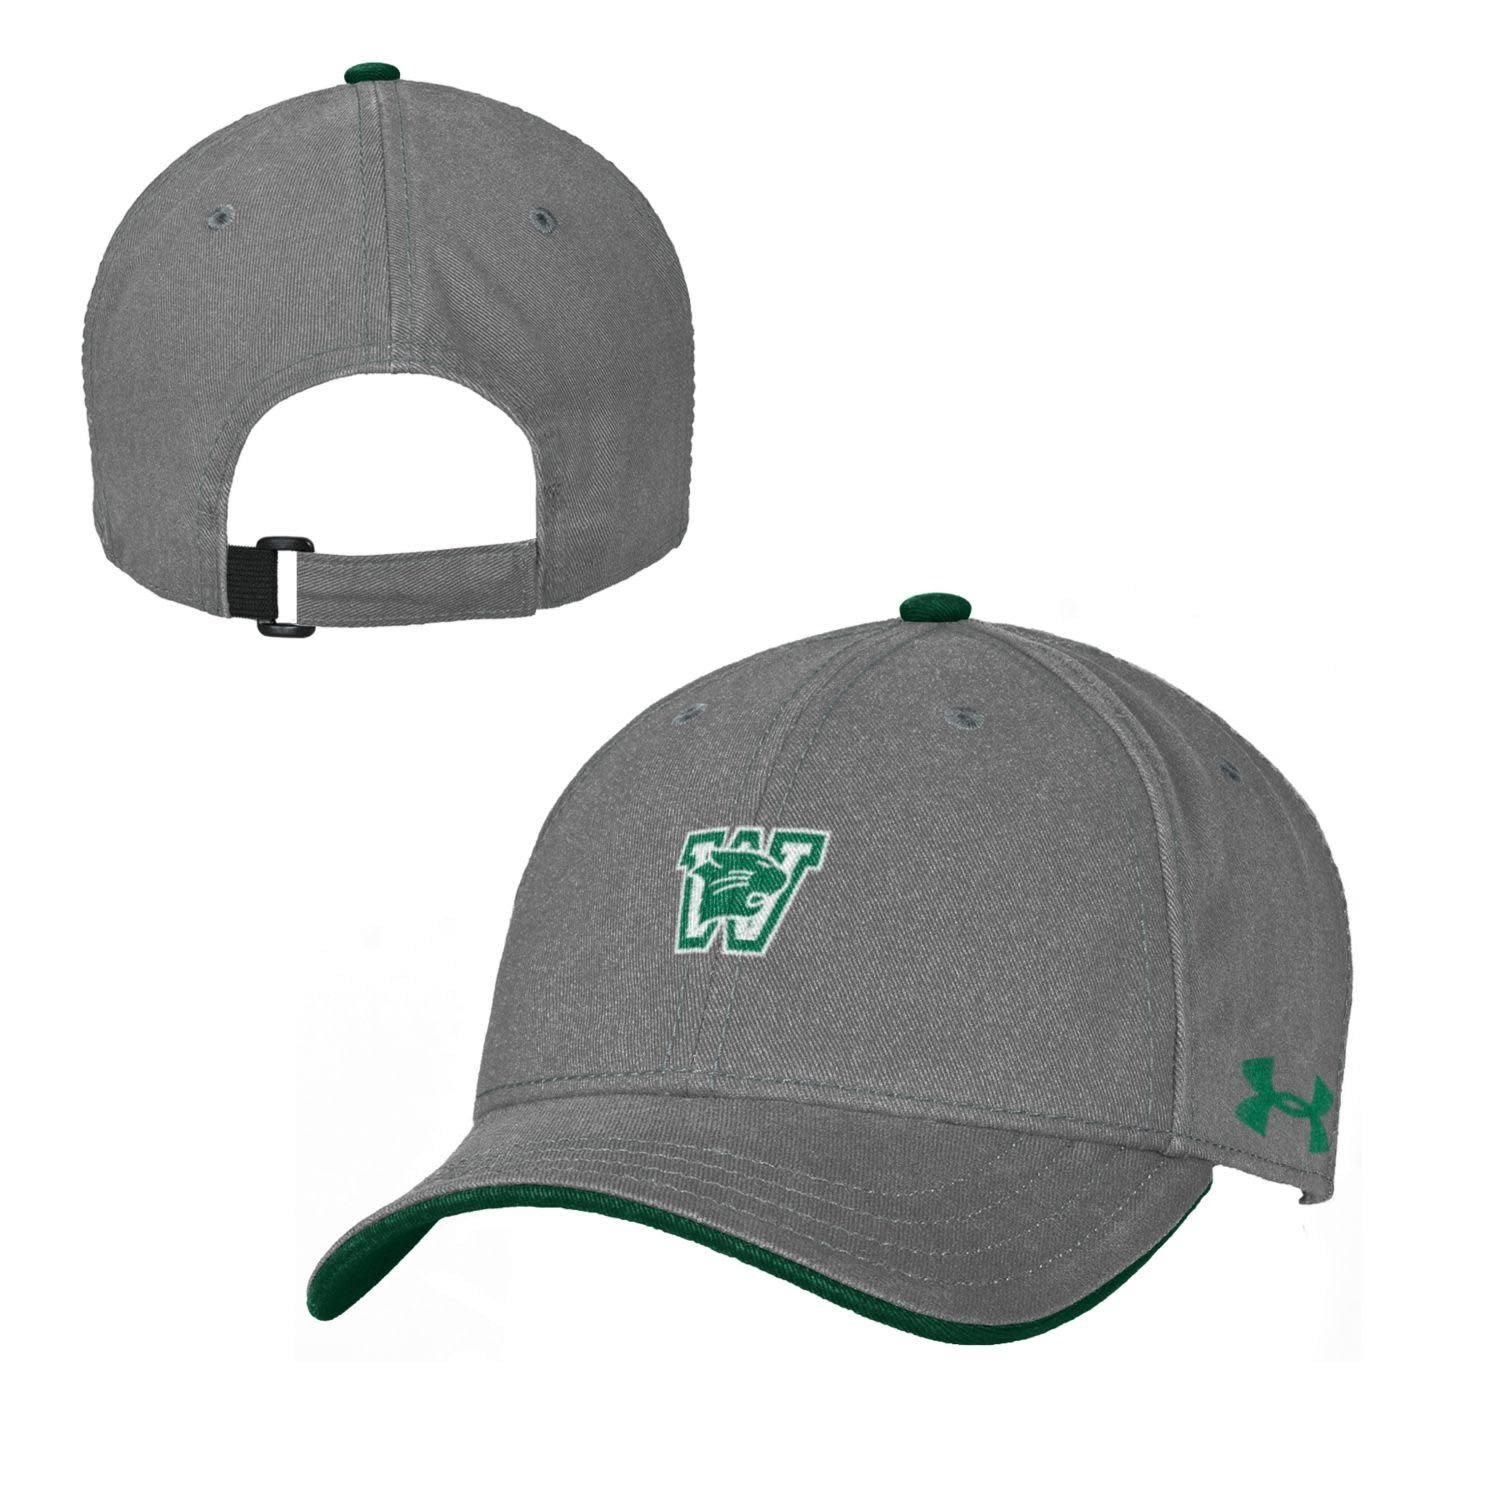 Hat: UA Youth OS Free Fit Graphite with Forest Green Button